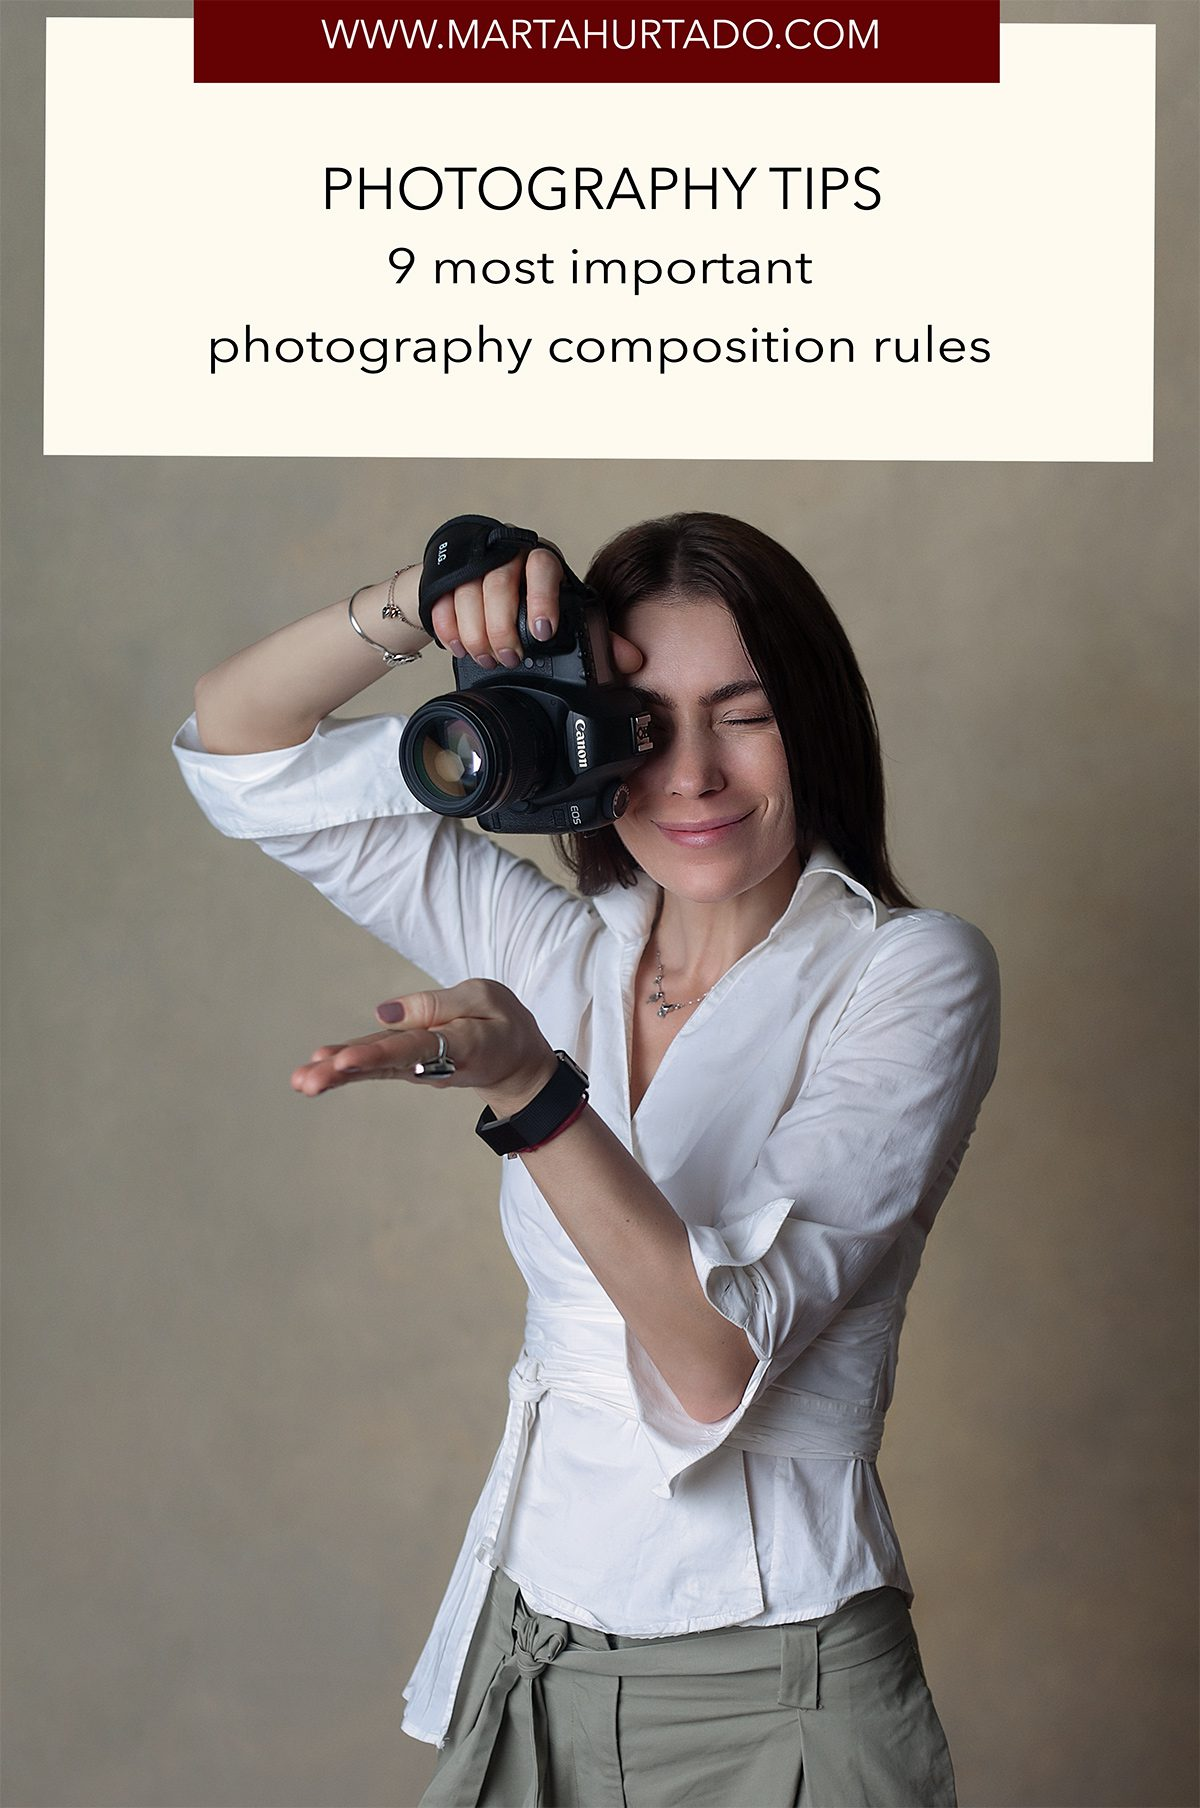 What are the 9 most important photography composition rules?